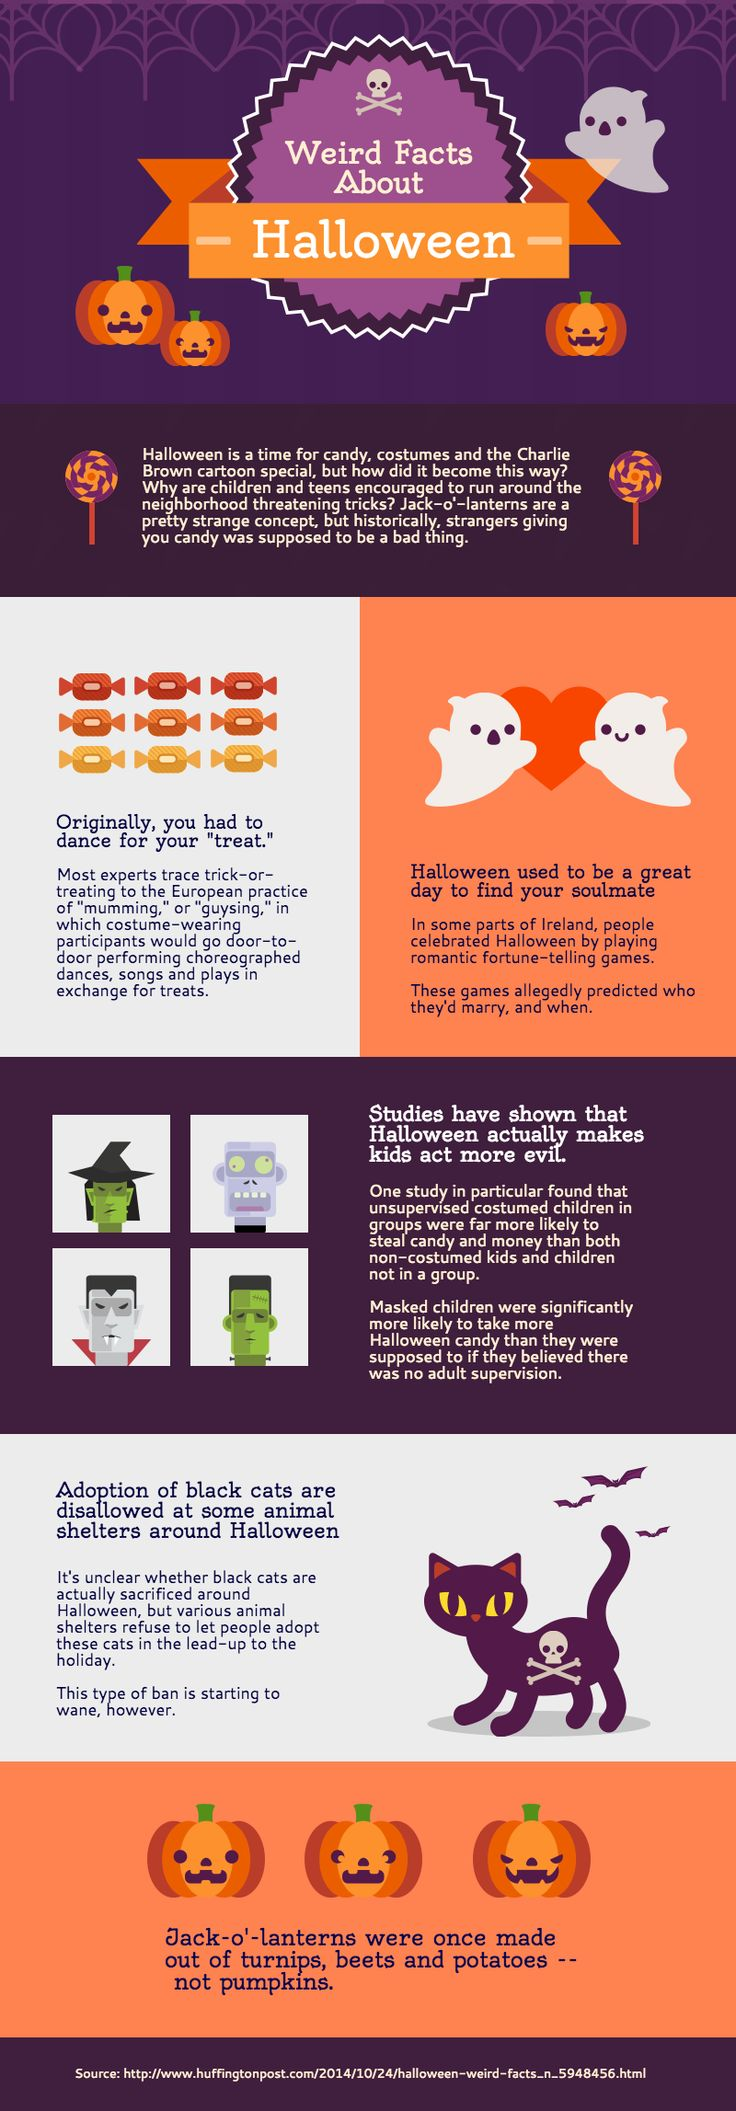 discover weird facts about halloween and use this template to share facts about a topic - Strange Halloween Facts